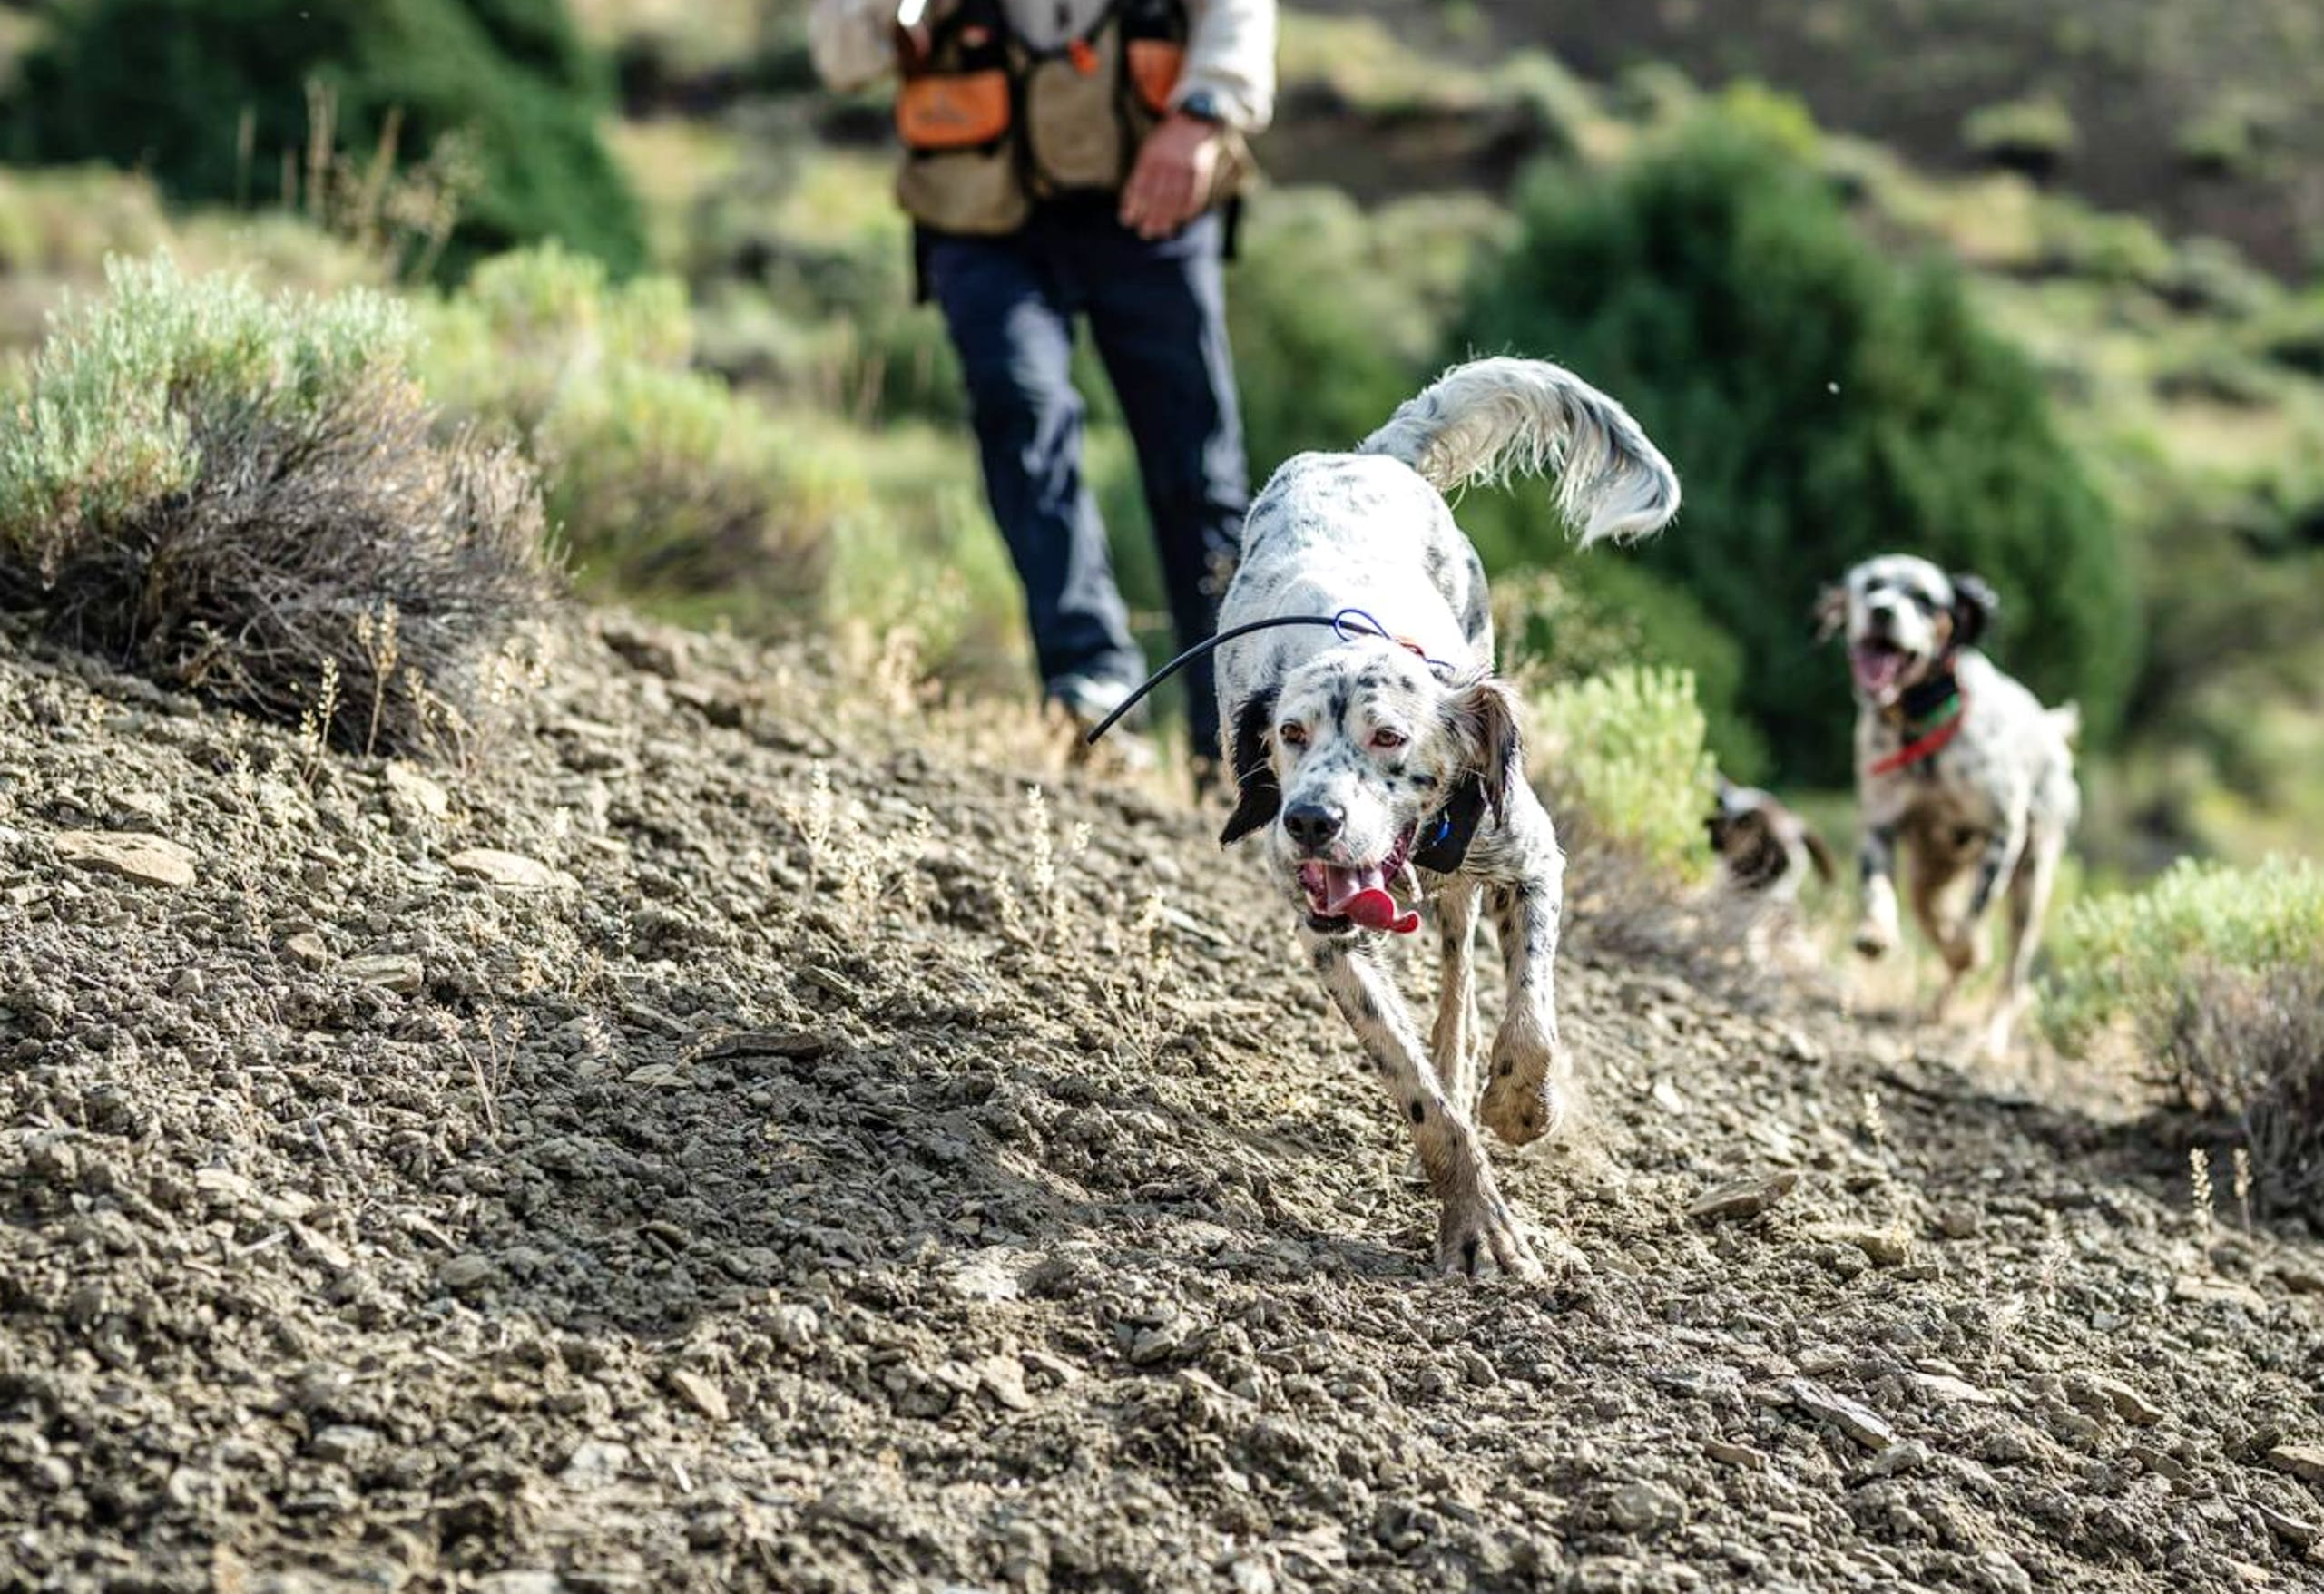 English Setters running uphill on a rocky terrain during a hunt